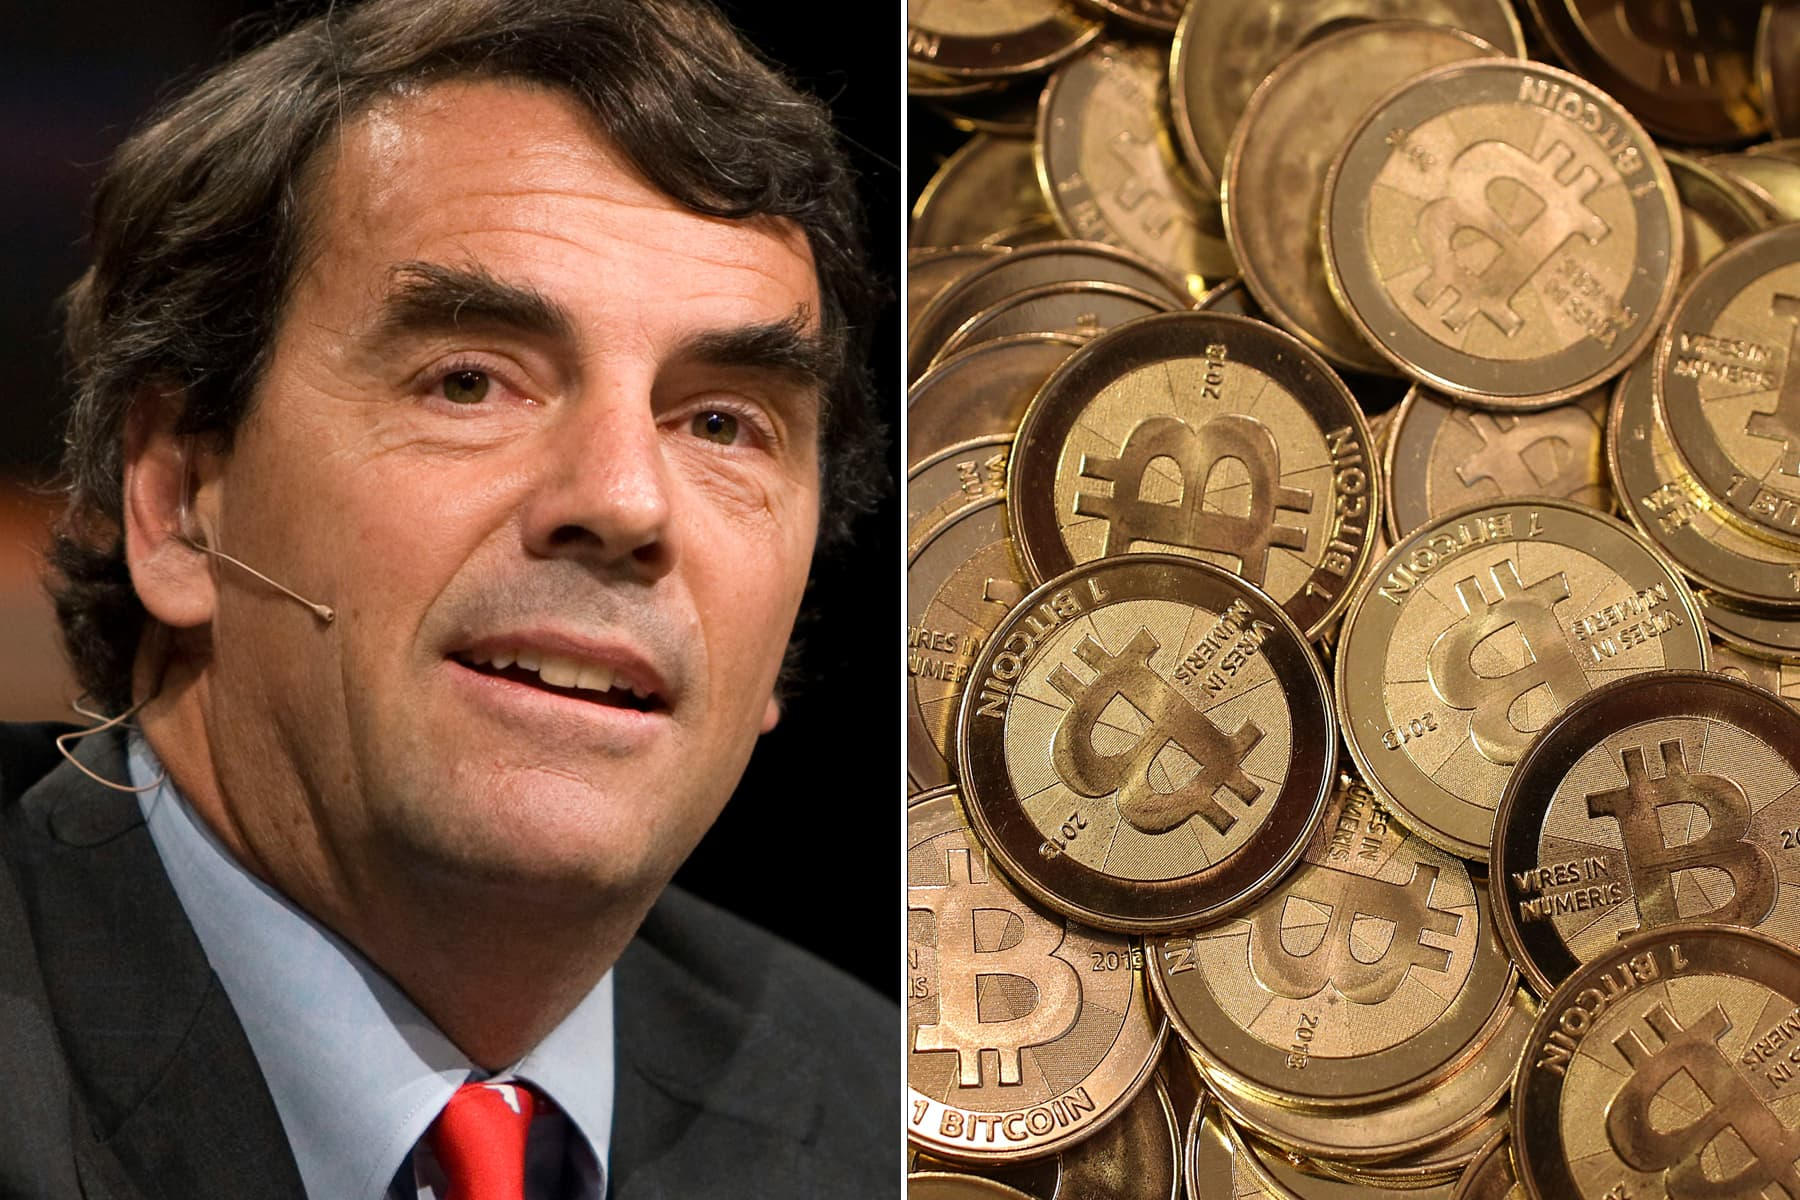 Billionaire bitcoin enthusiast Tim Draper is backing a new cryptocurrency for the first time